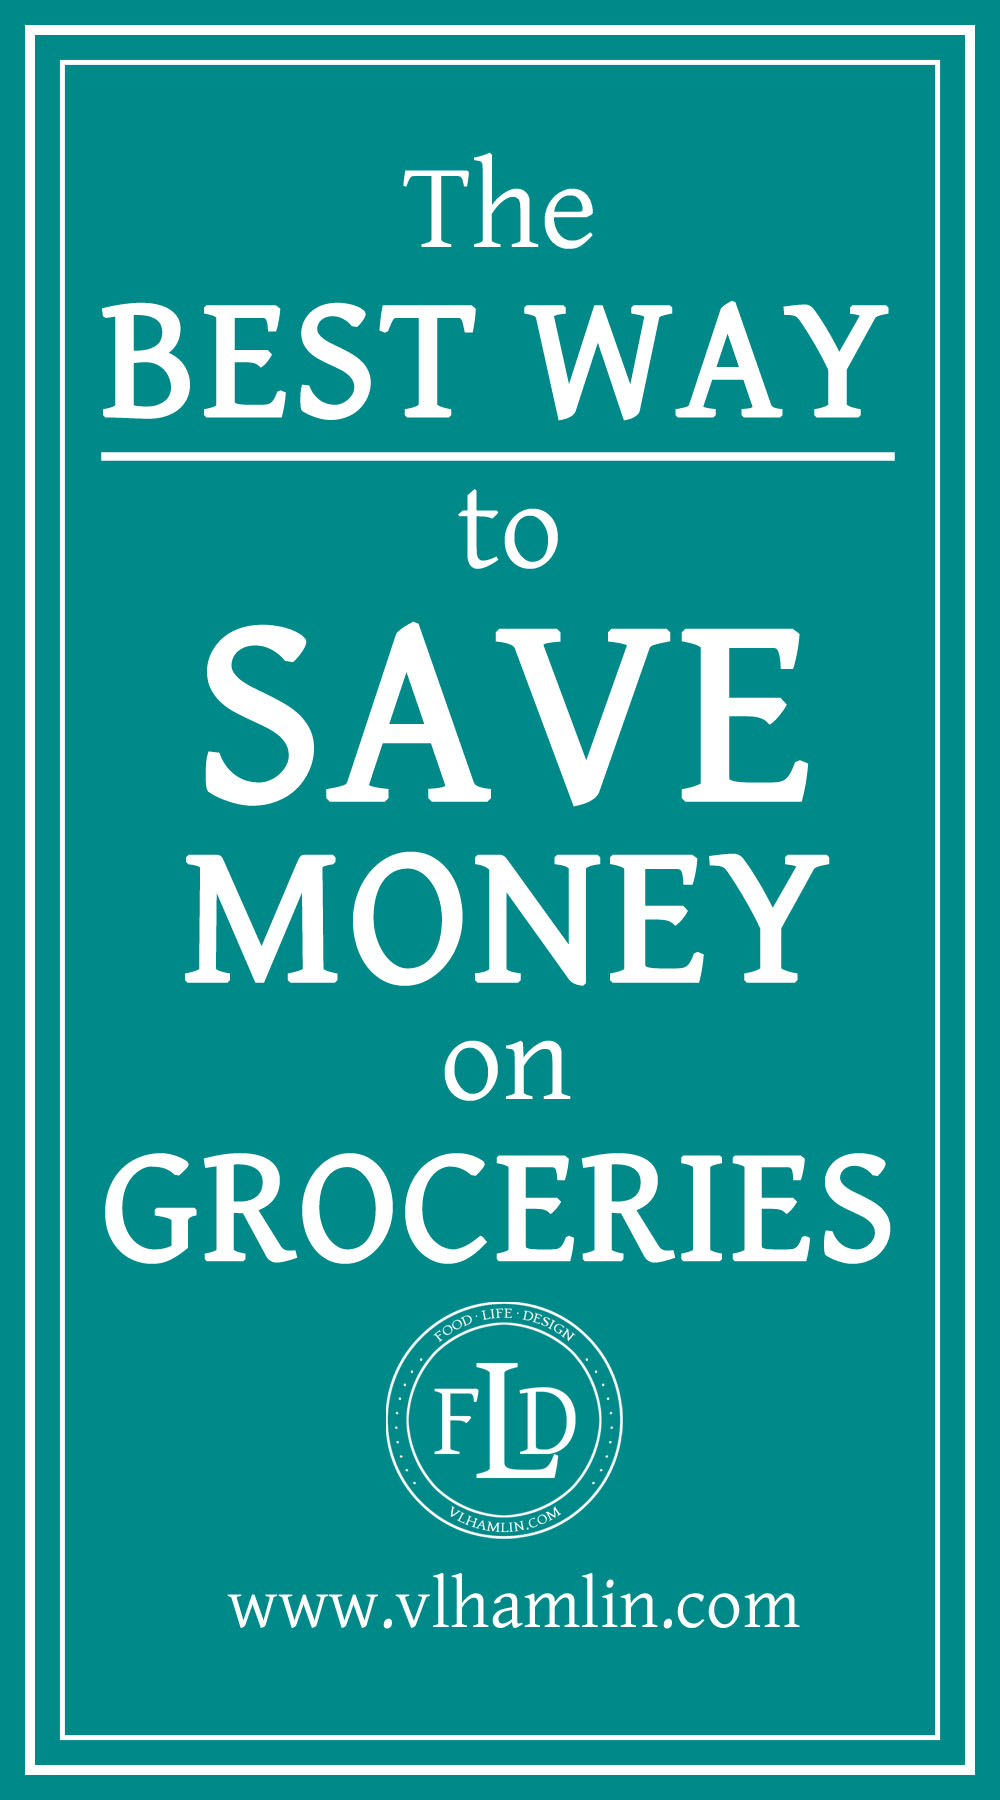 The Best Way to Save Money on Groceries